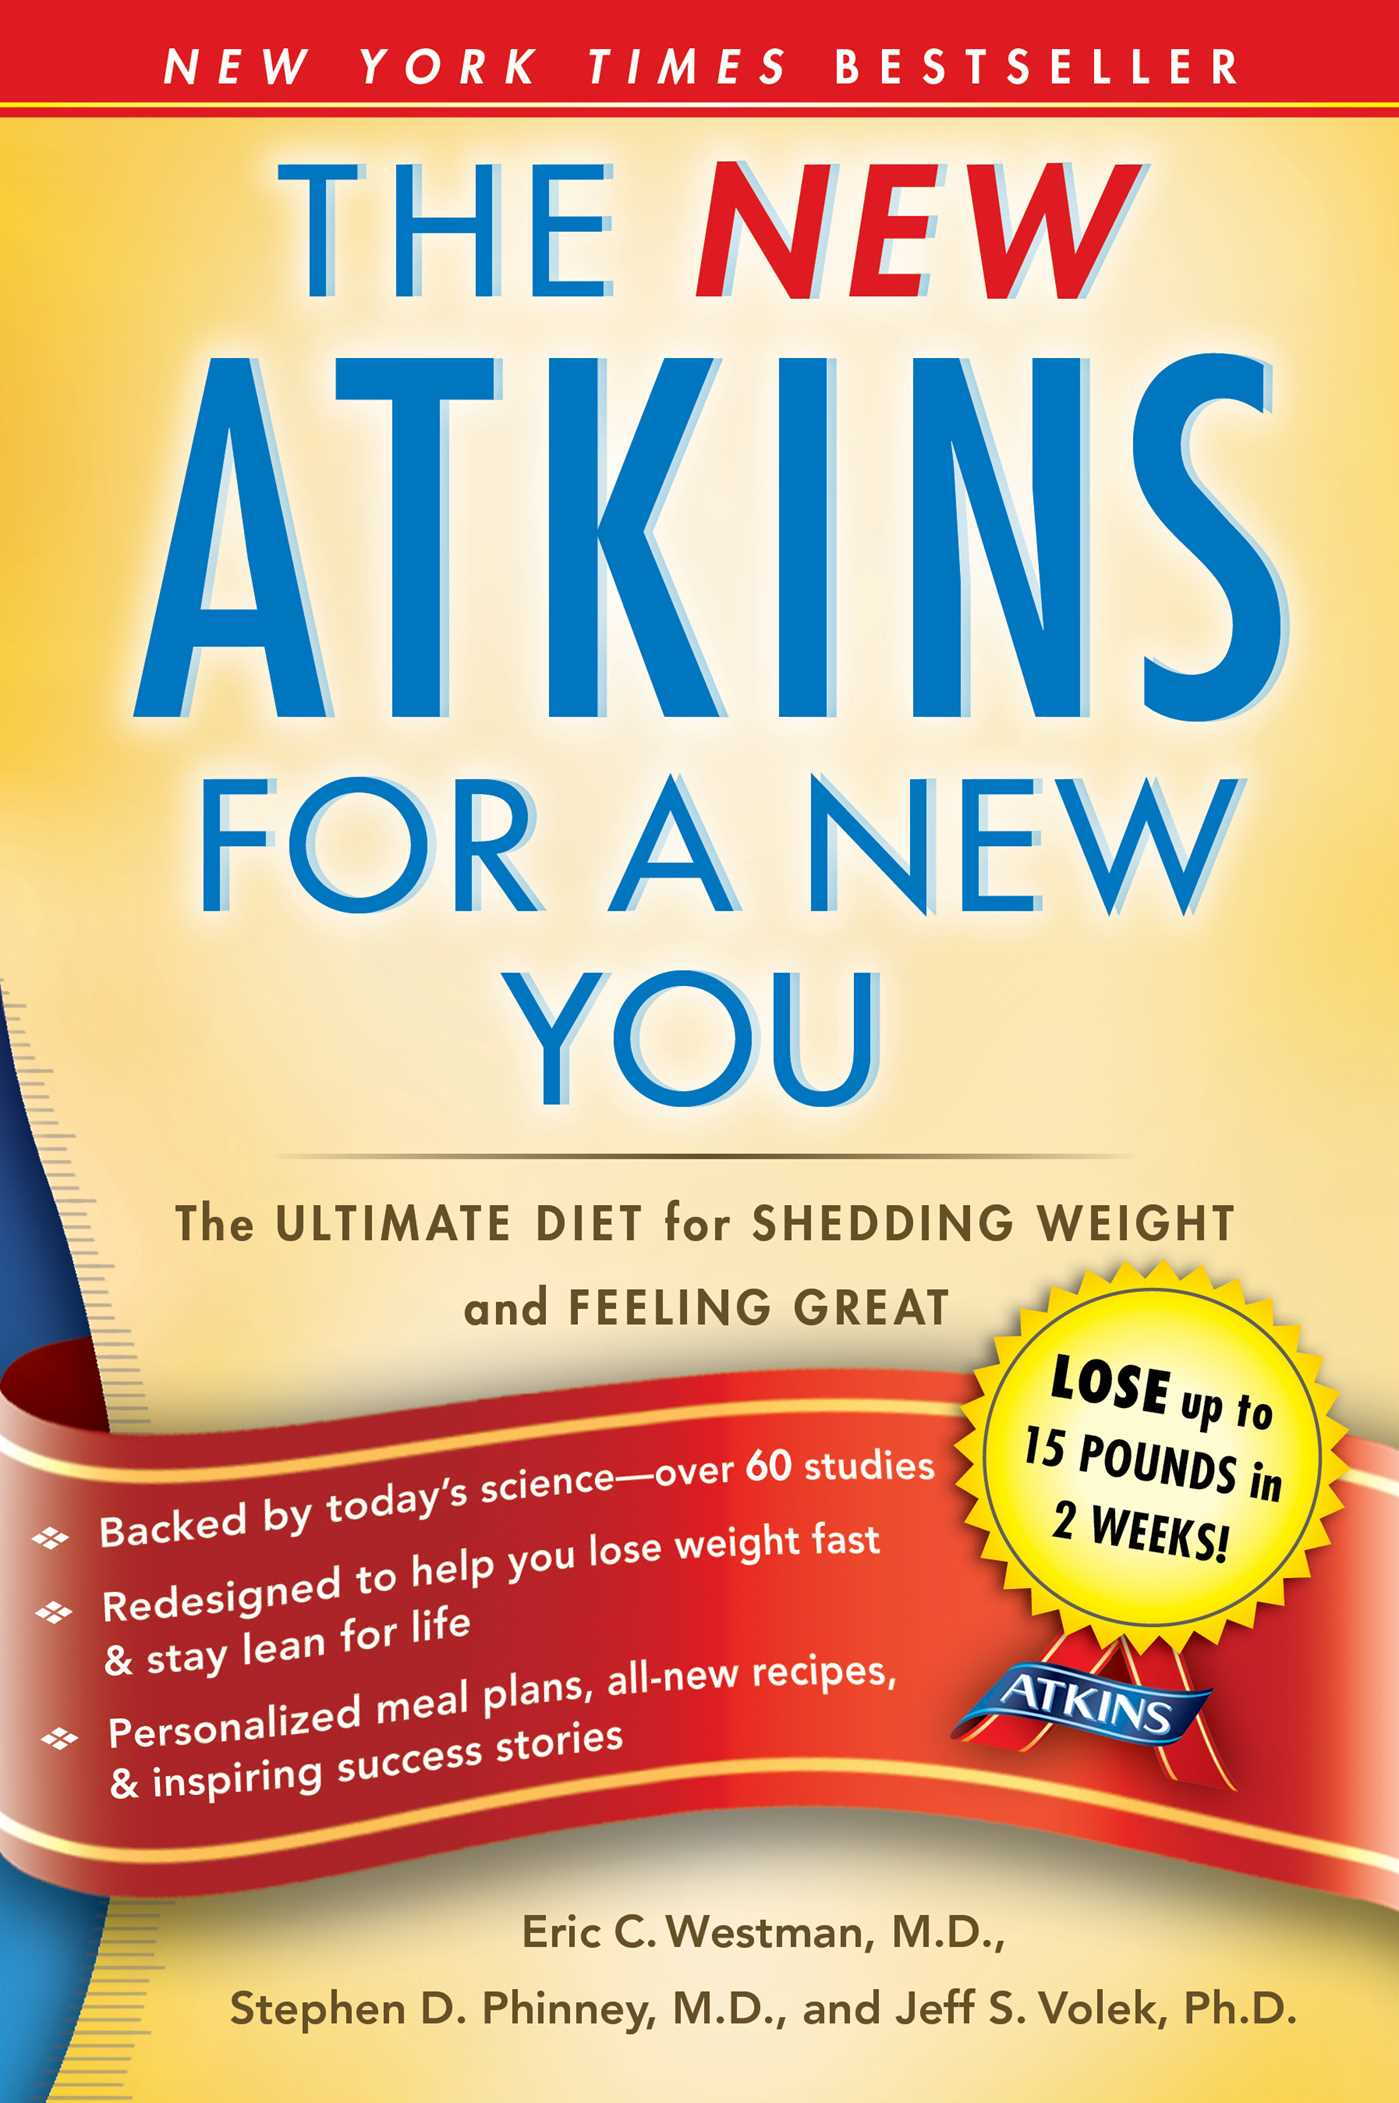 New-atkins-for-a-new-you-9781439190289_hr